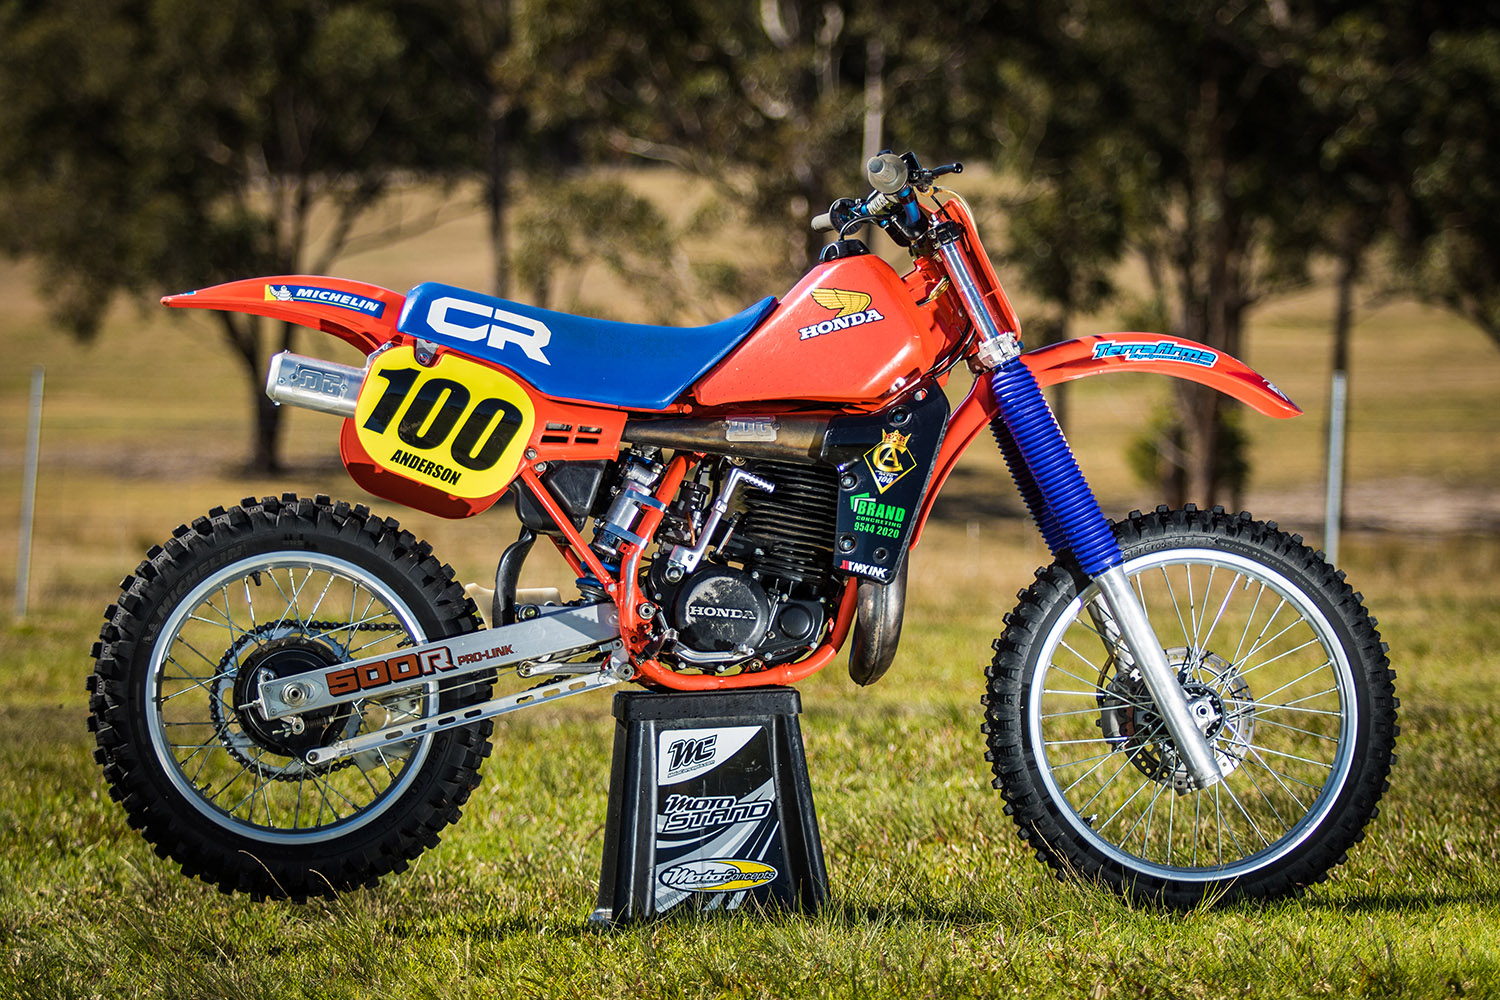 CR500 MAIN PIC - P34